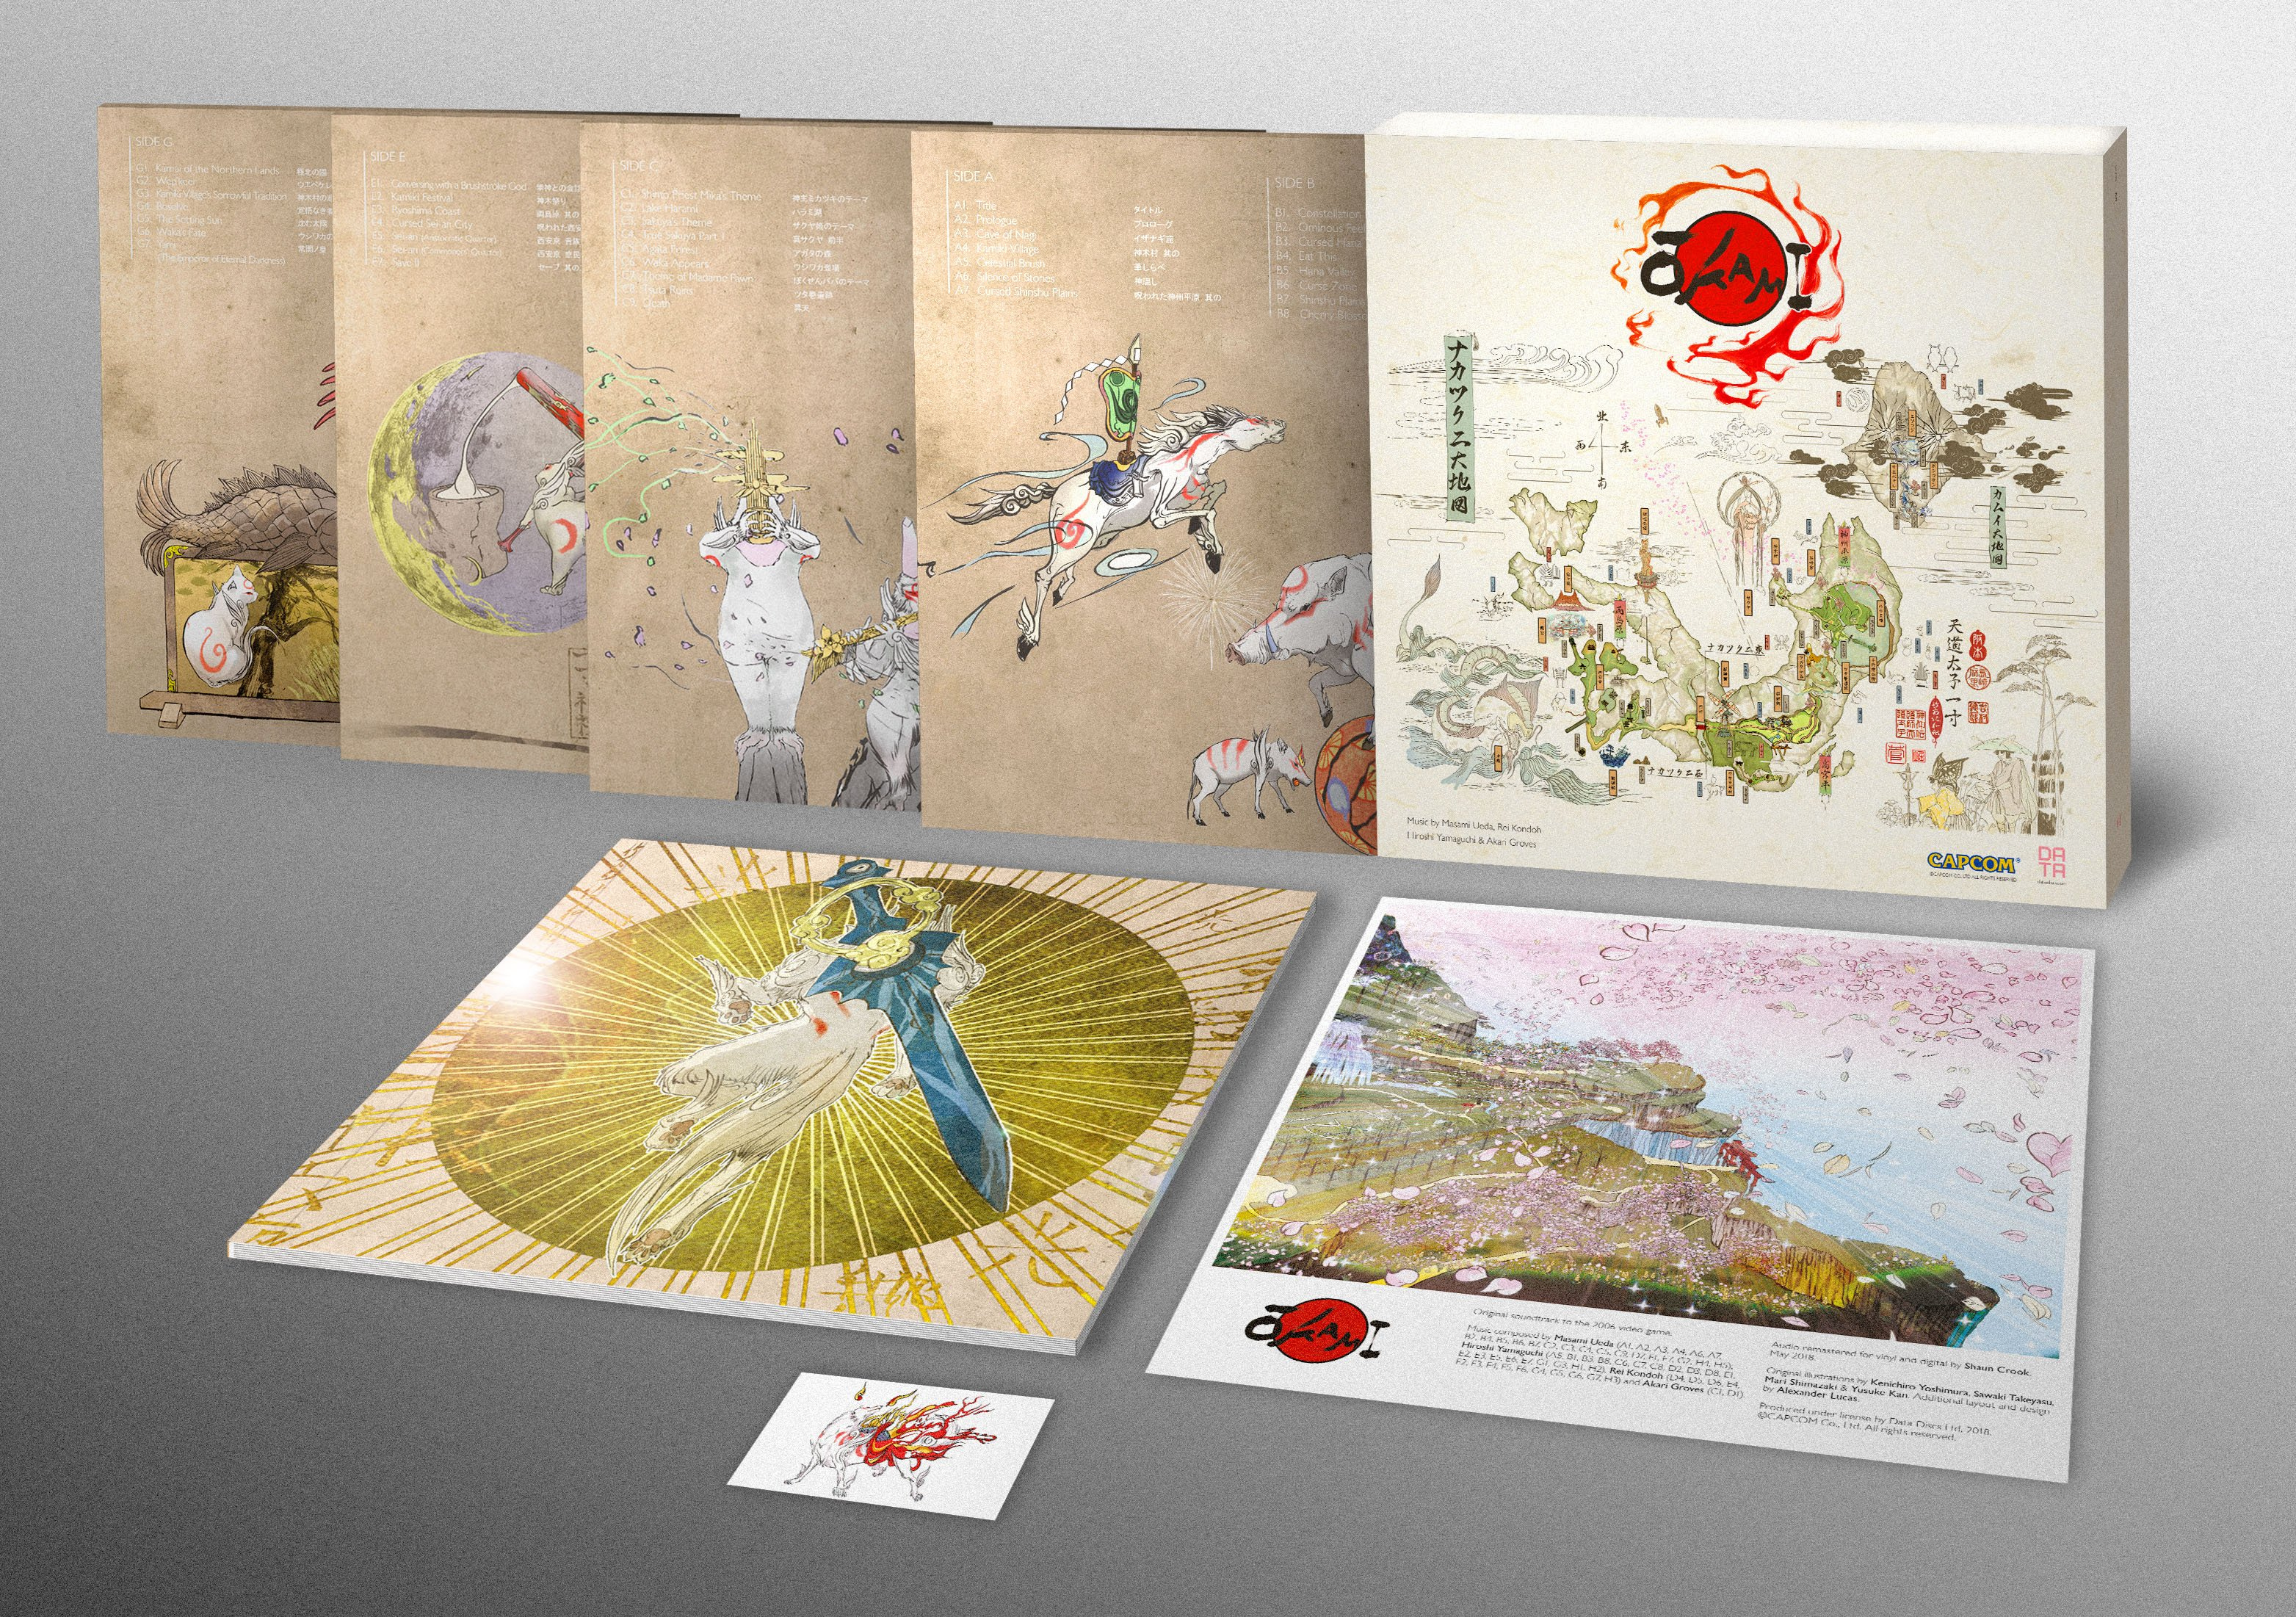 The new Okami soundtrack vinyl release is absolutely